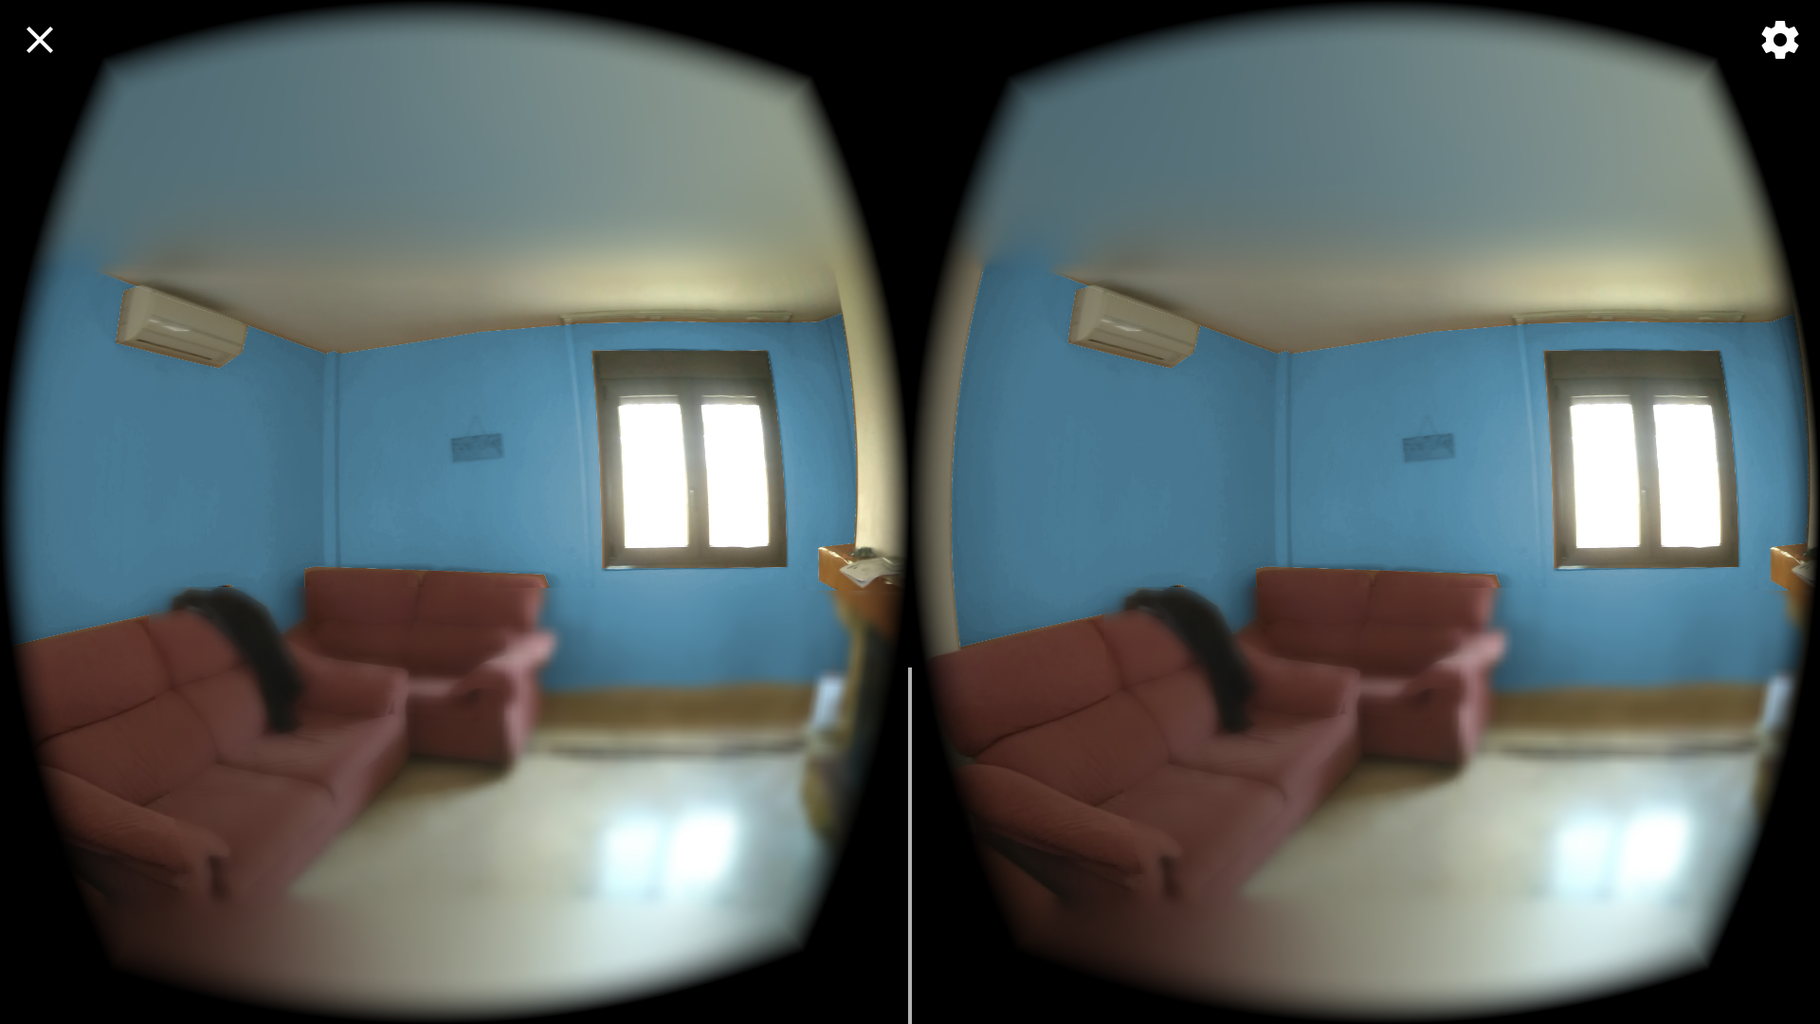 Generate New VR Image